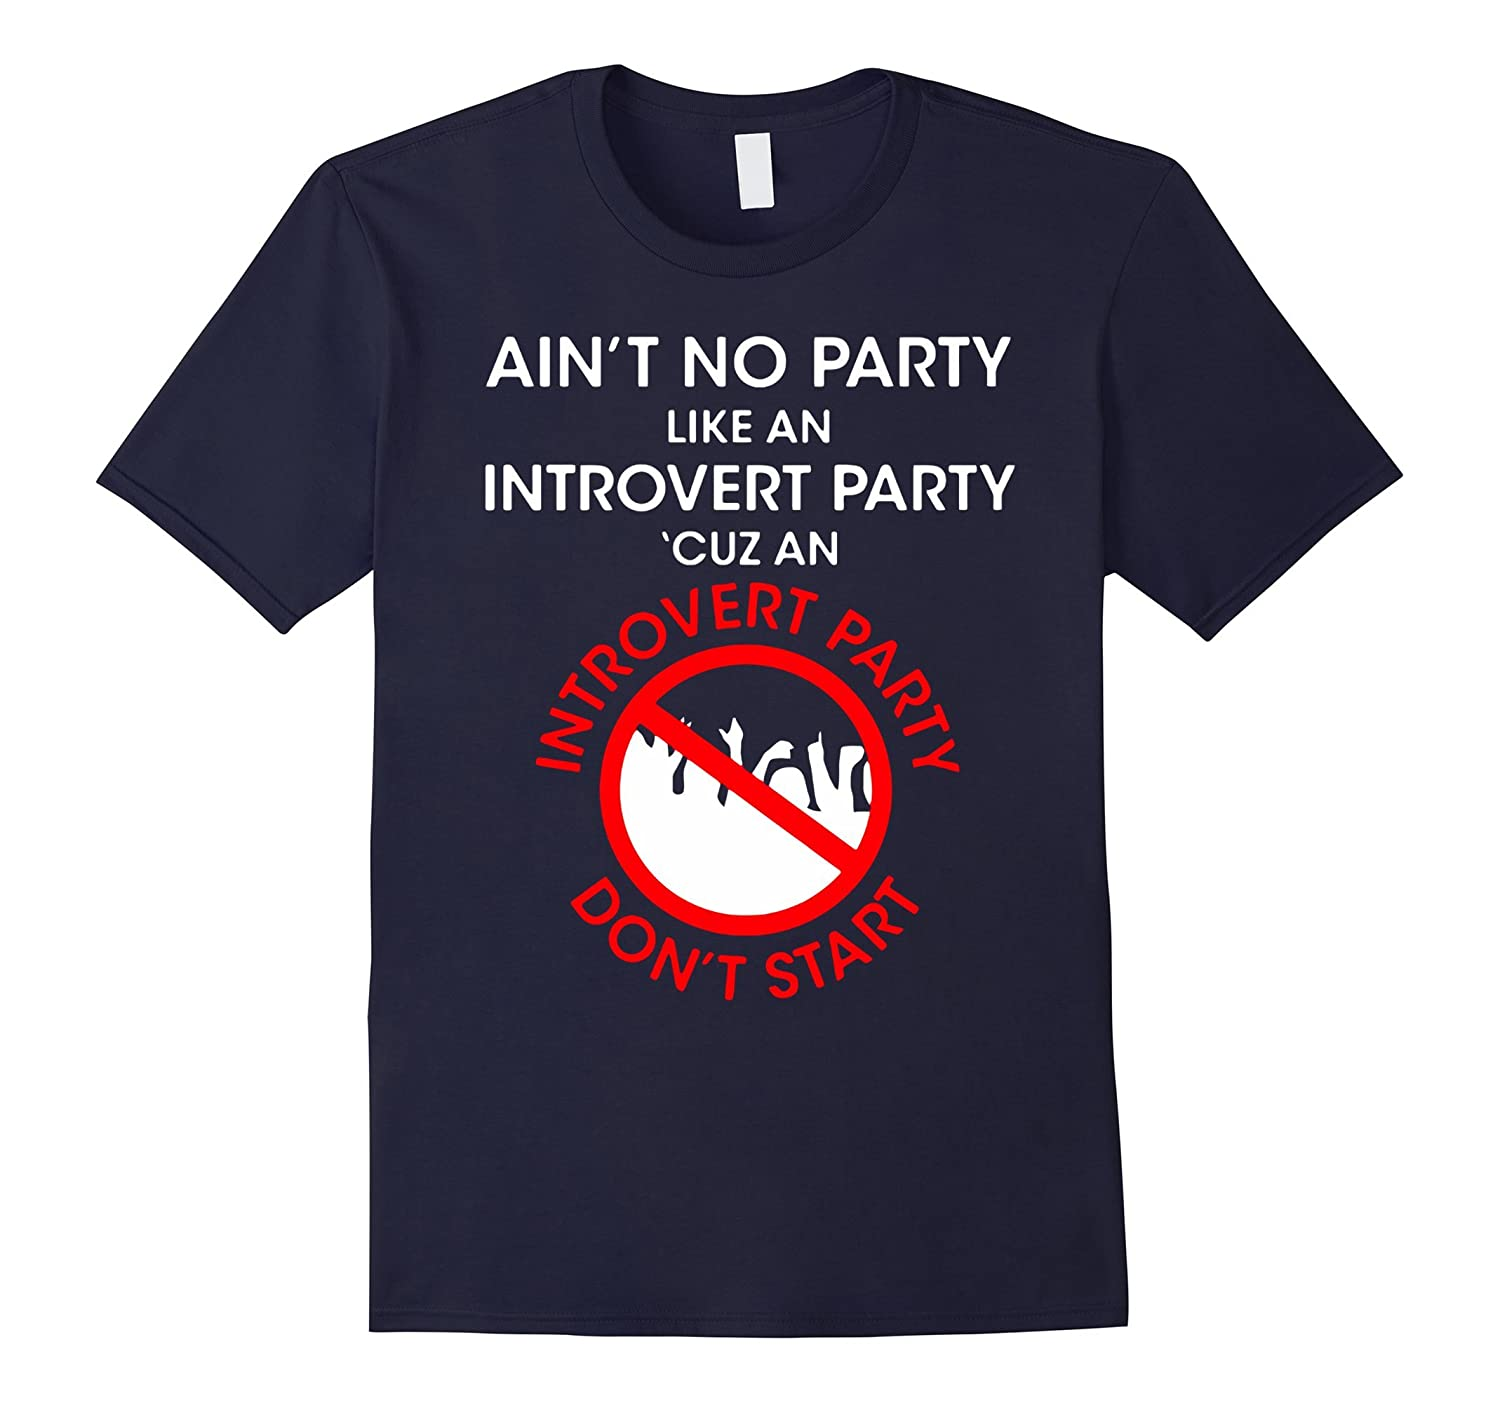 Aint No Party Like An Introvert Party Shirt-BN